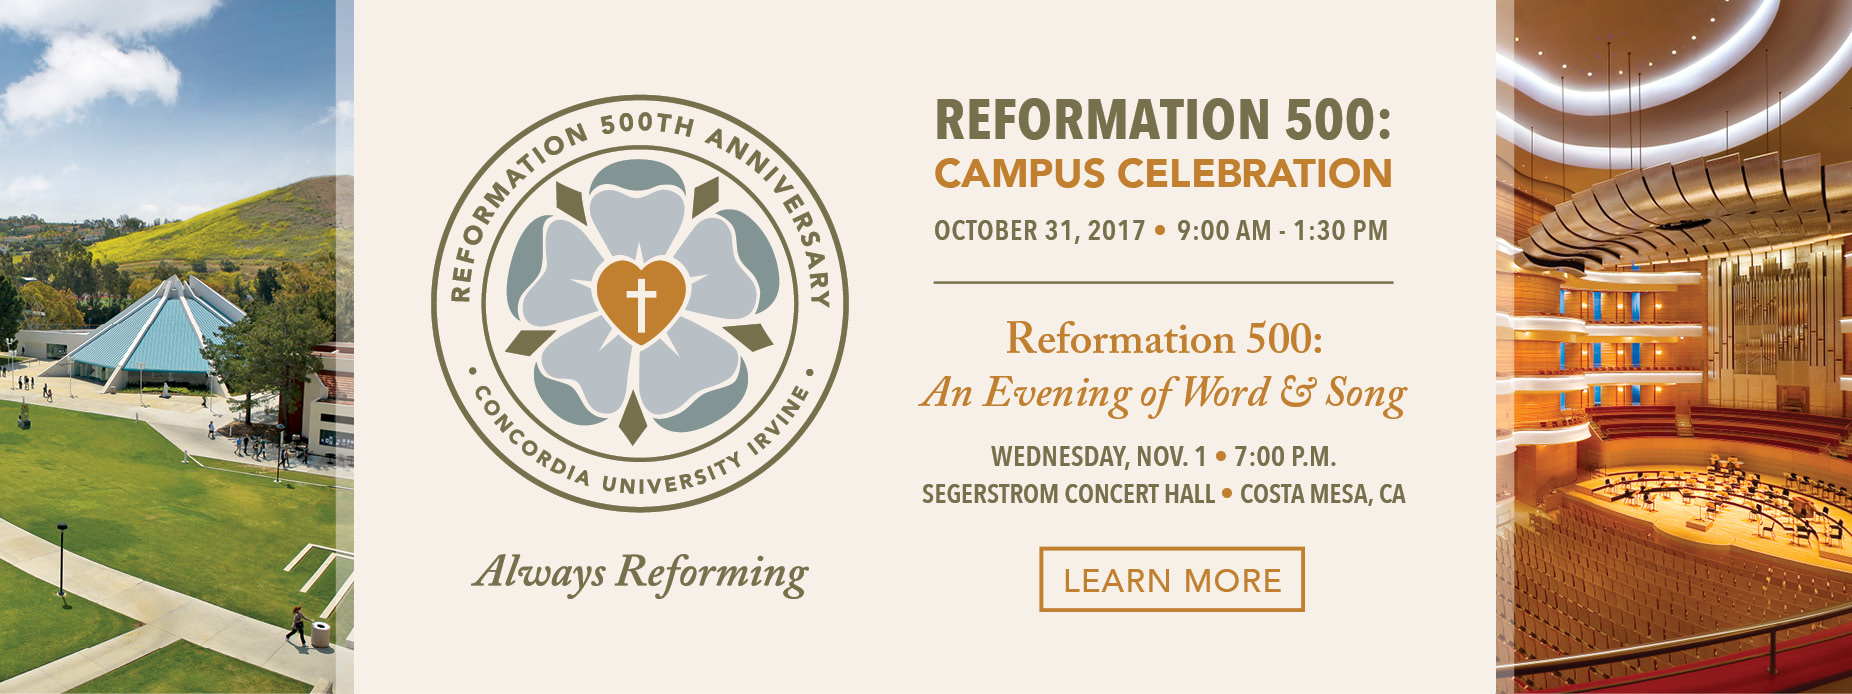 Reformation 500th Anniversary Campus Celebration & Evening of Word and Song